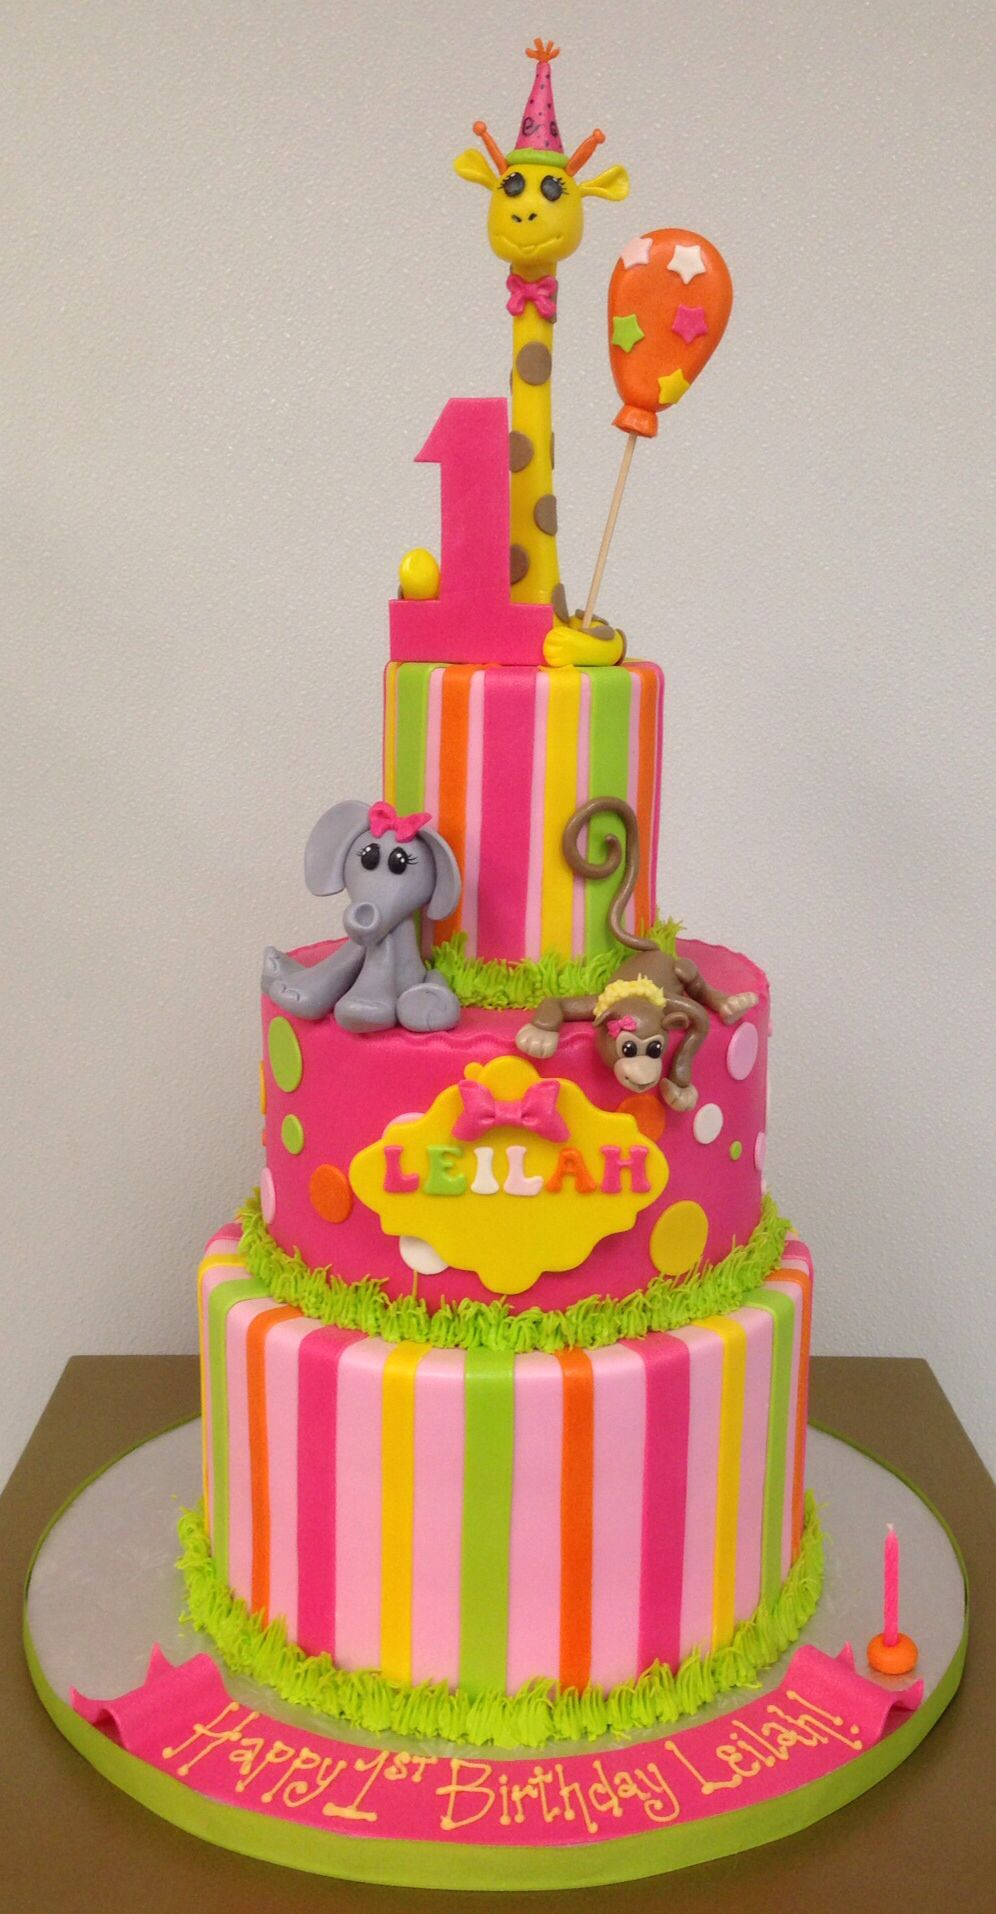 Zoo animal 1st birthday cake elephant cake giraffe cake monkey